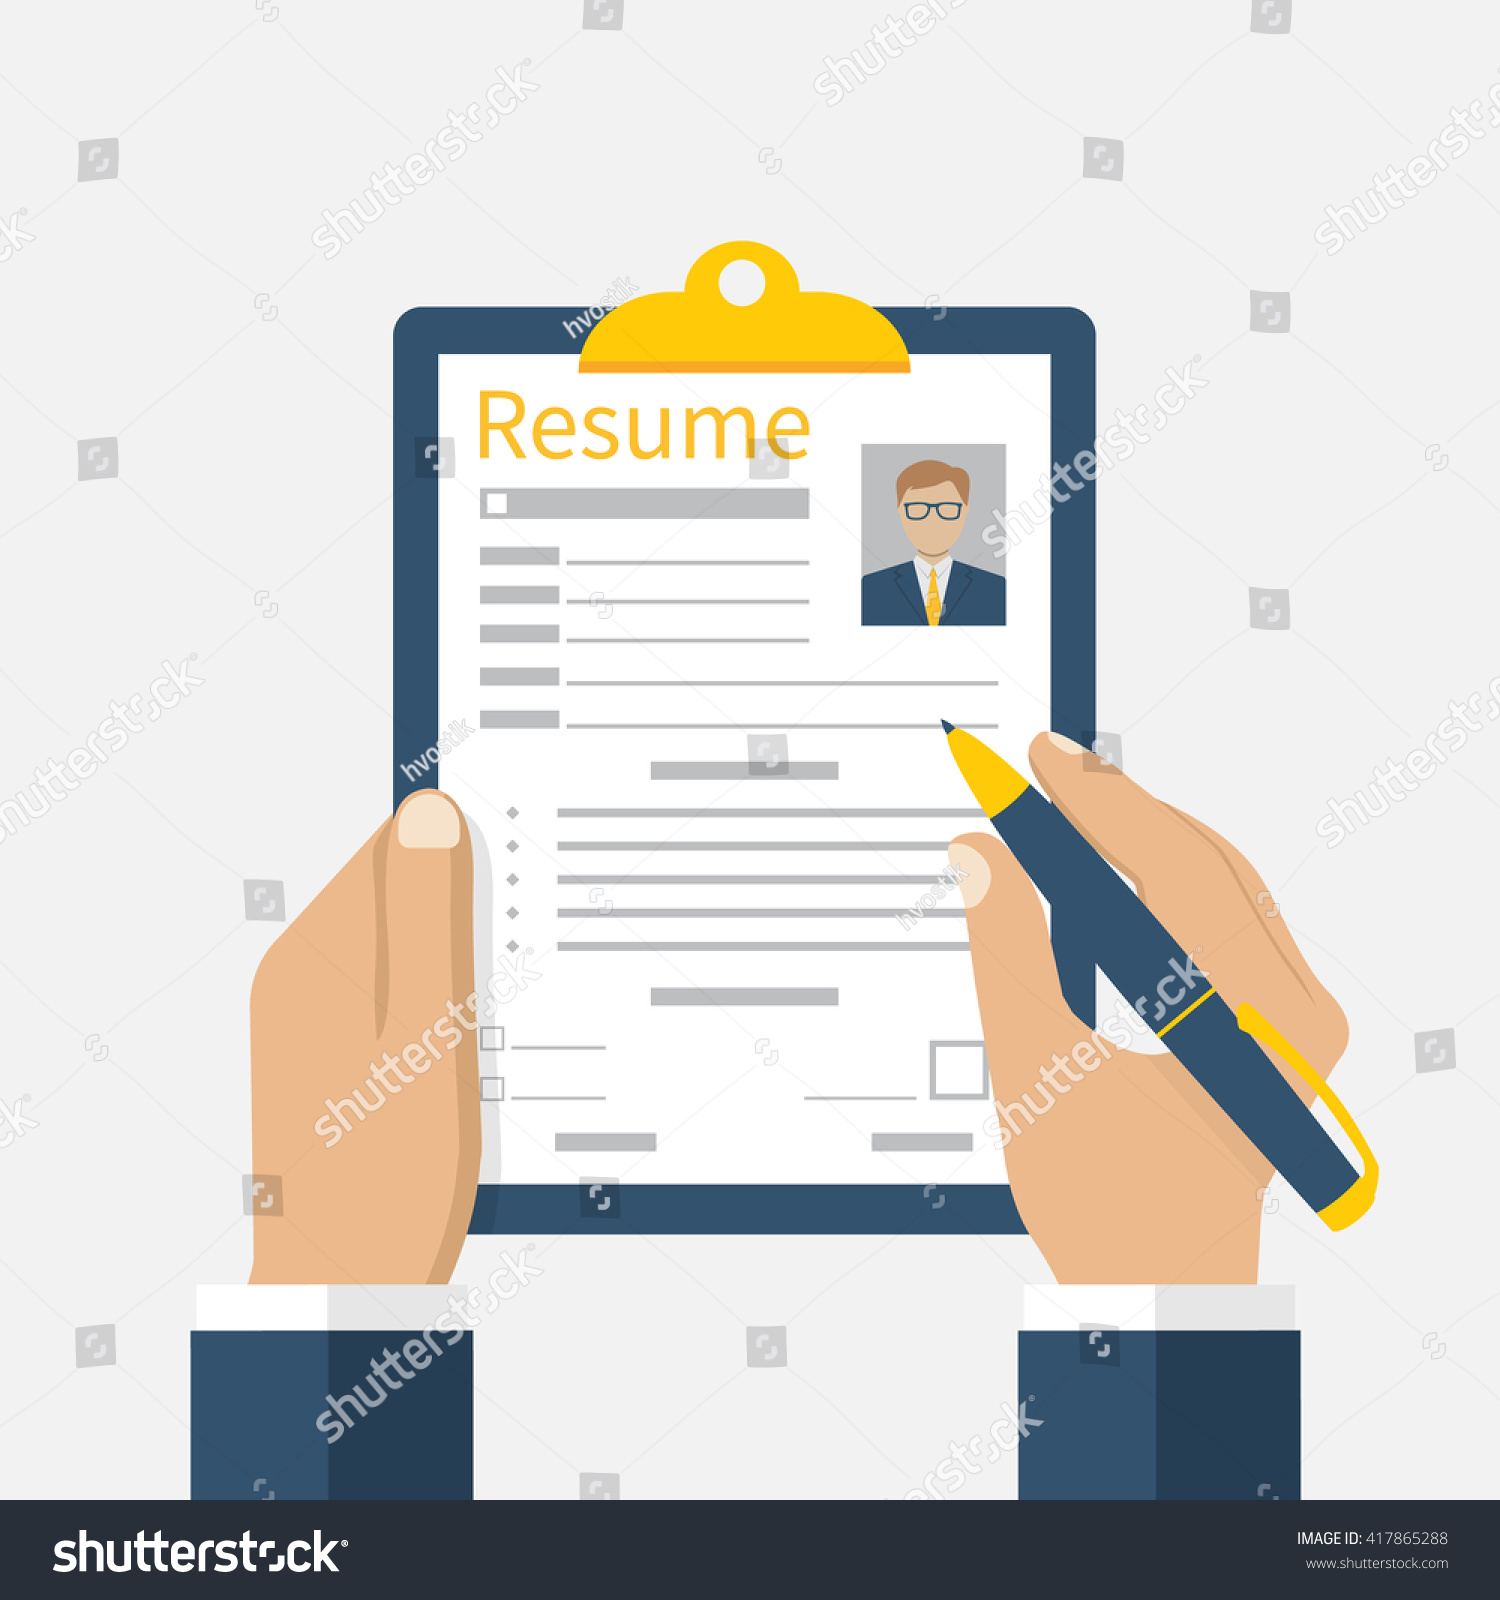 resume form hands clipboard leaf hand stock vector 417865288